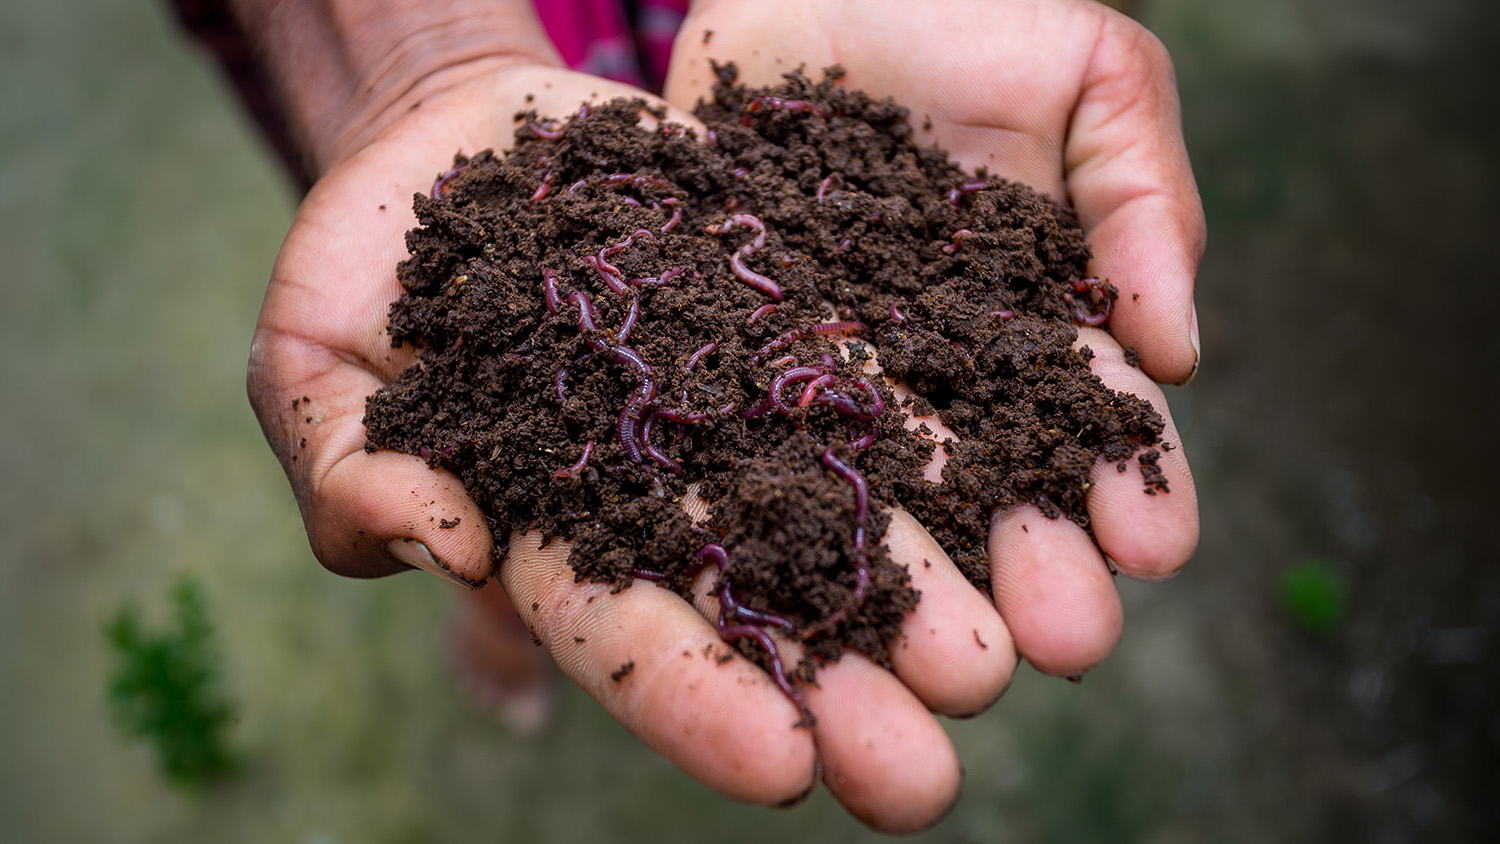 Hand holding vermicompost with worms.